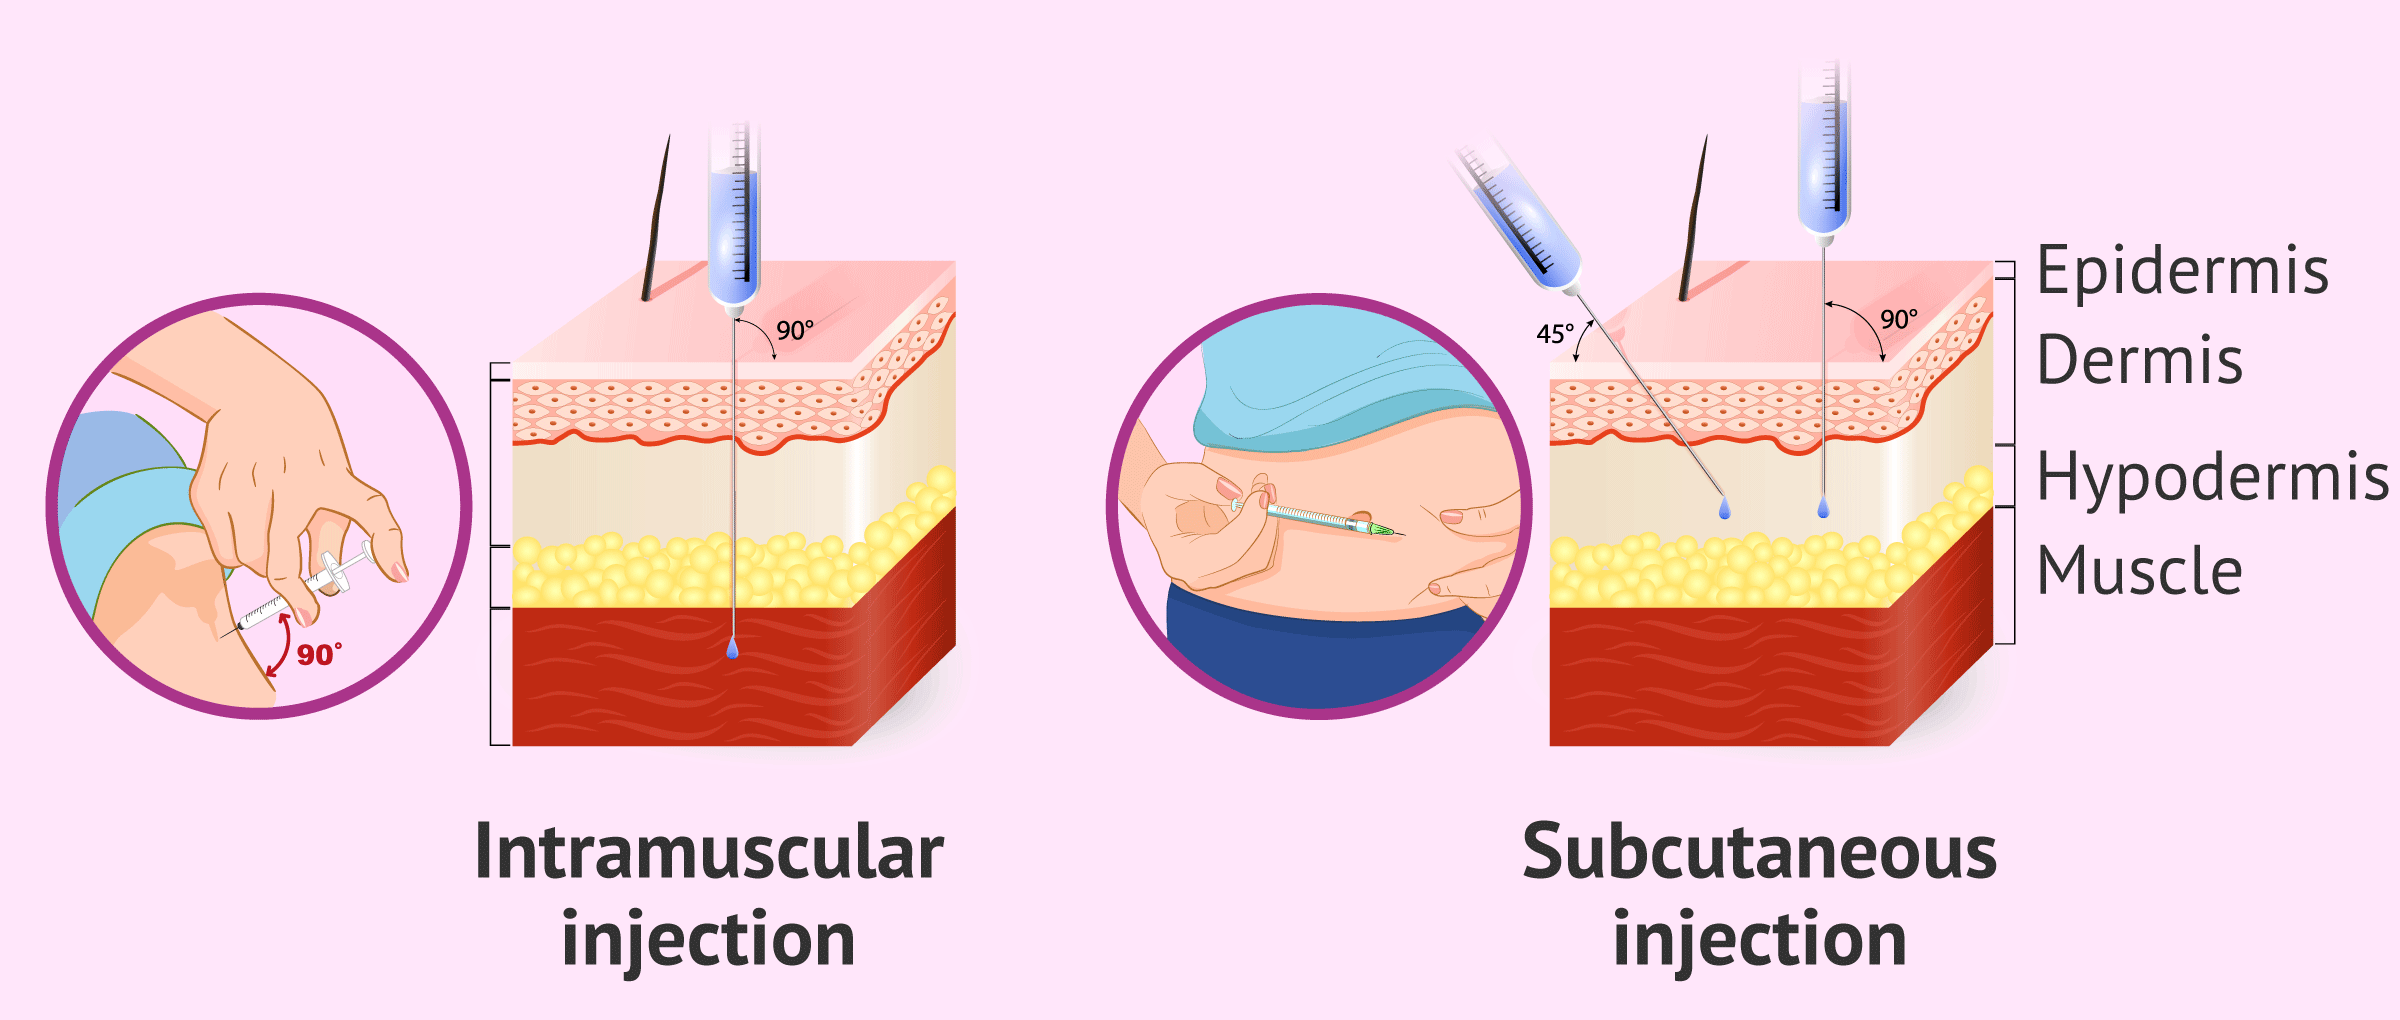 Types of Decapeptyl injection: intramuscular (monthly) and subcutanean (daily)